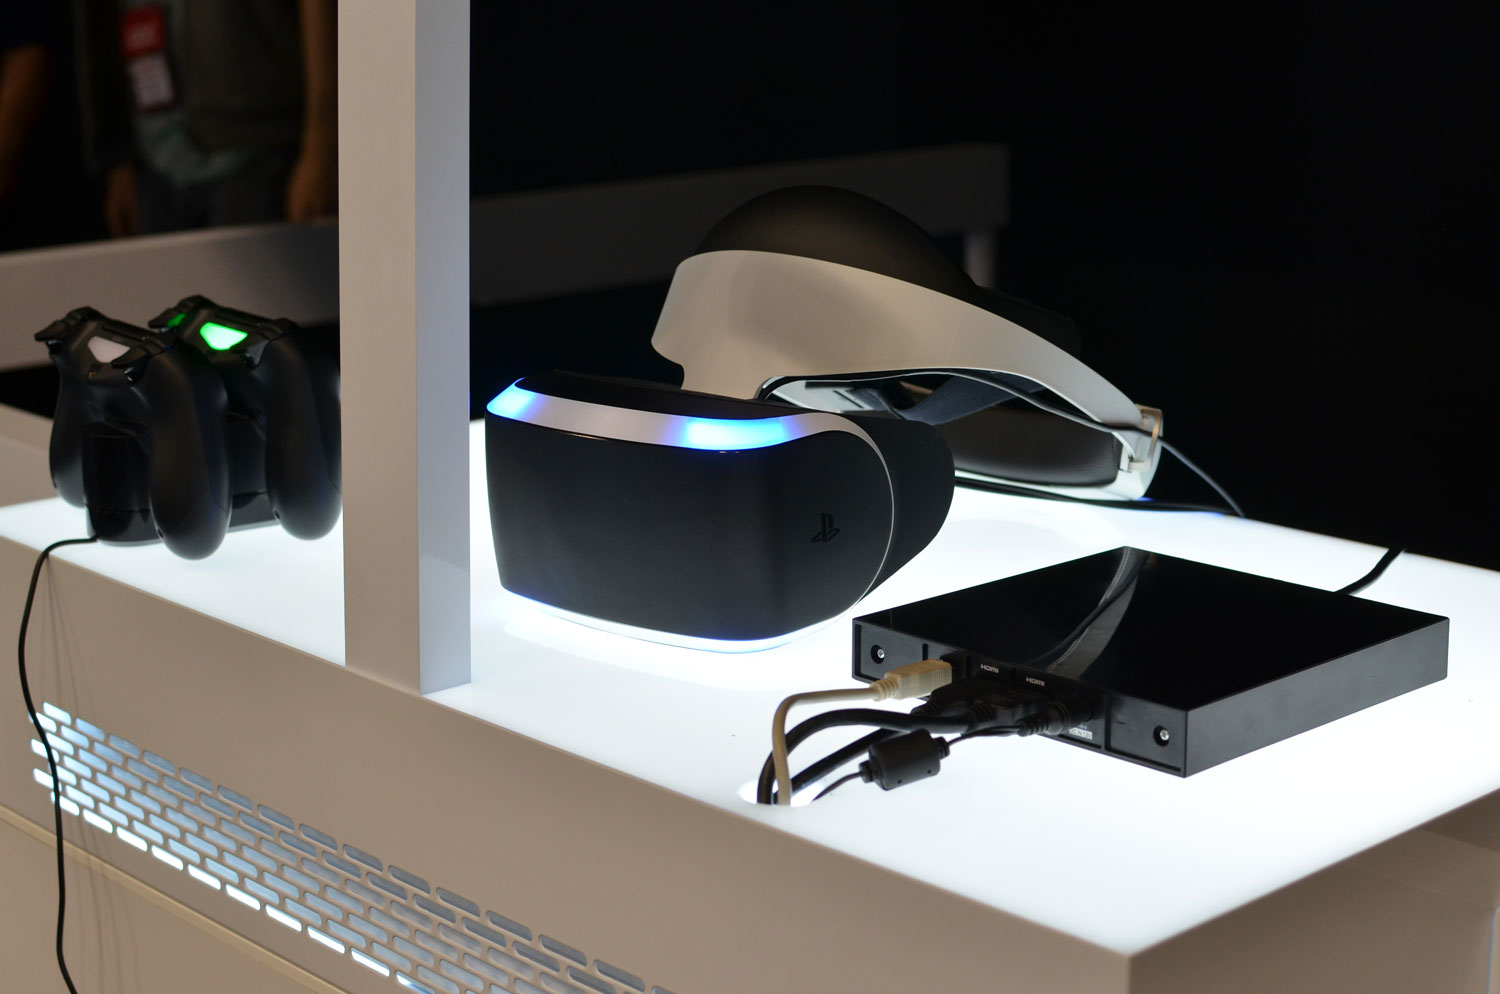 sony-ps4-vr-headset-project-morpheus-hands-on-gdc-2014.jpg